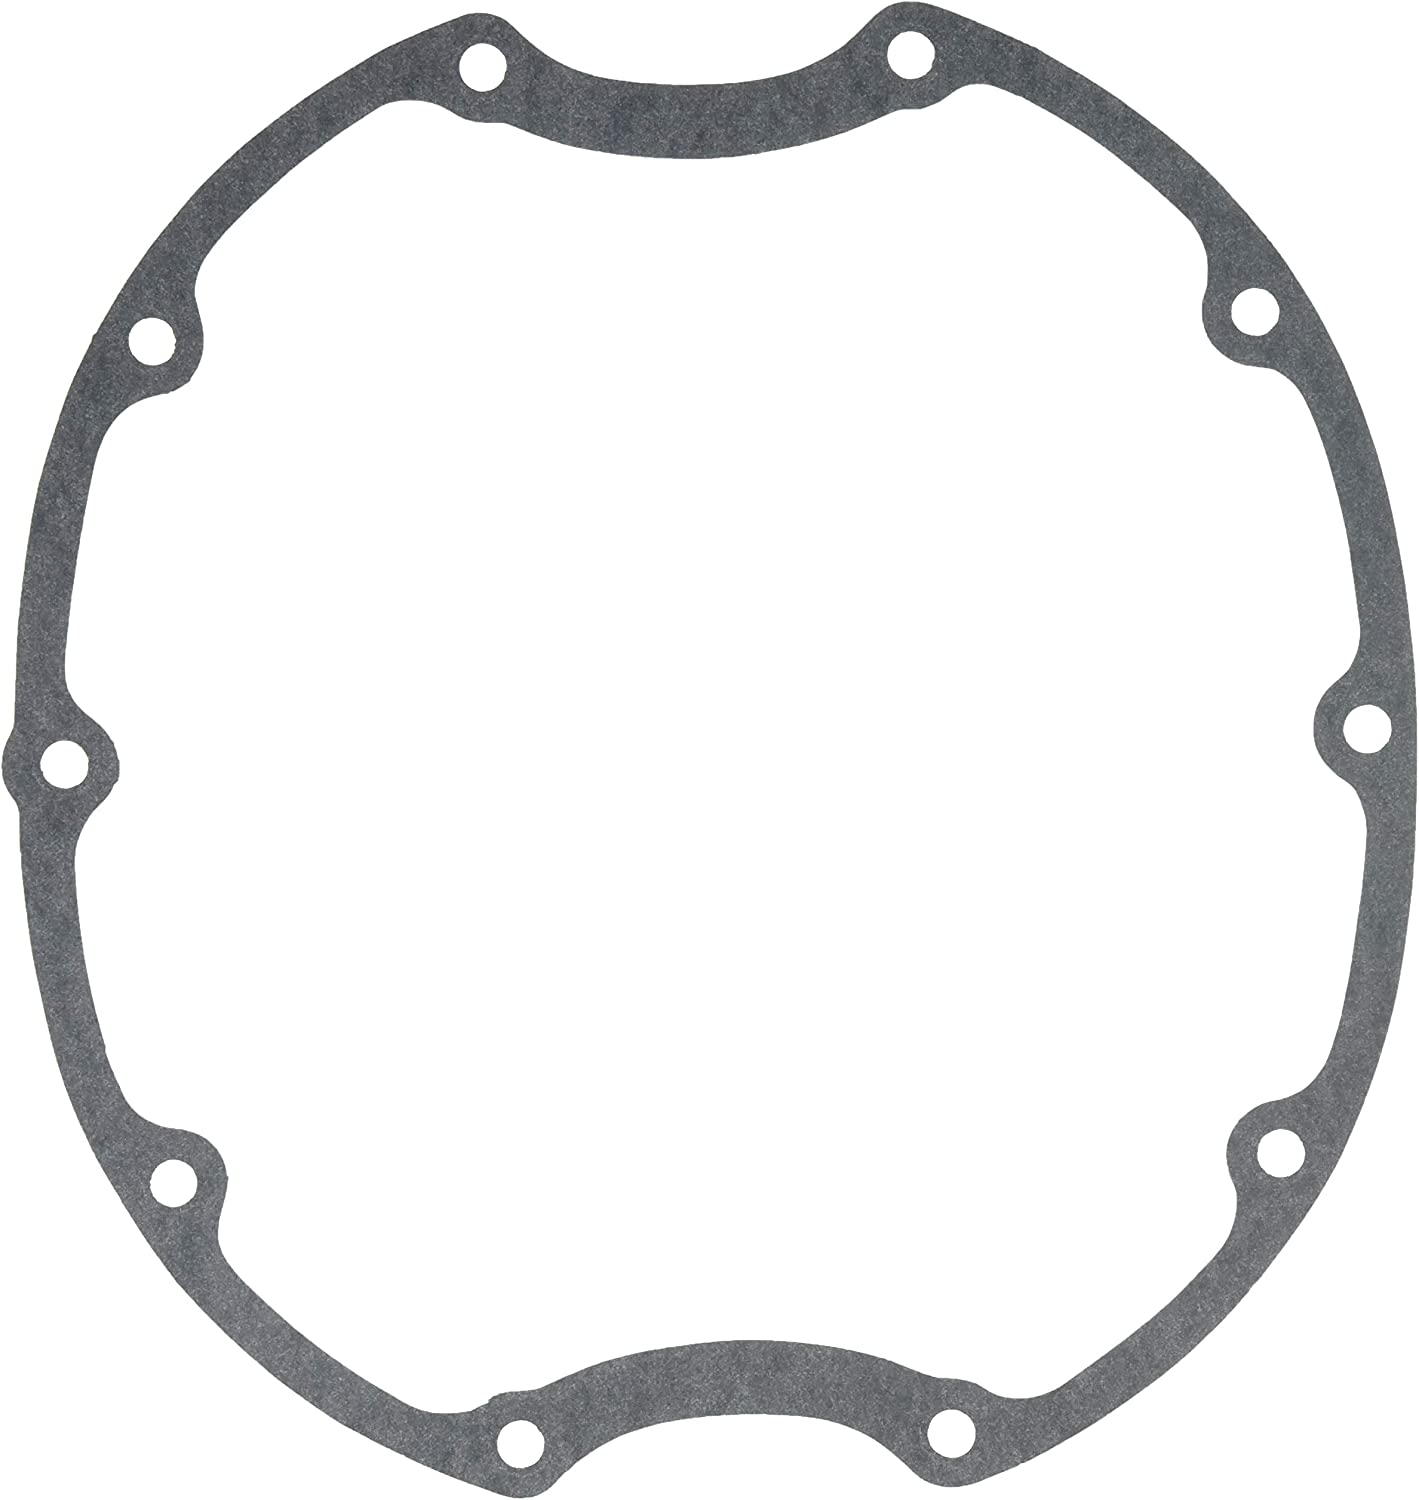 MAHLE Bombing free shipping New life P27820 Axle Cover Gasket Housing